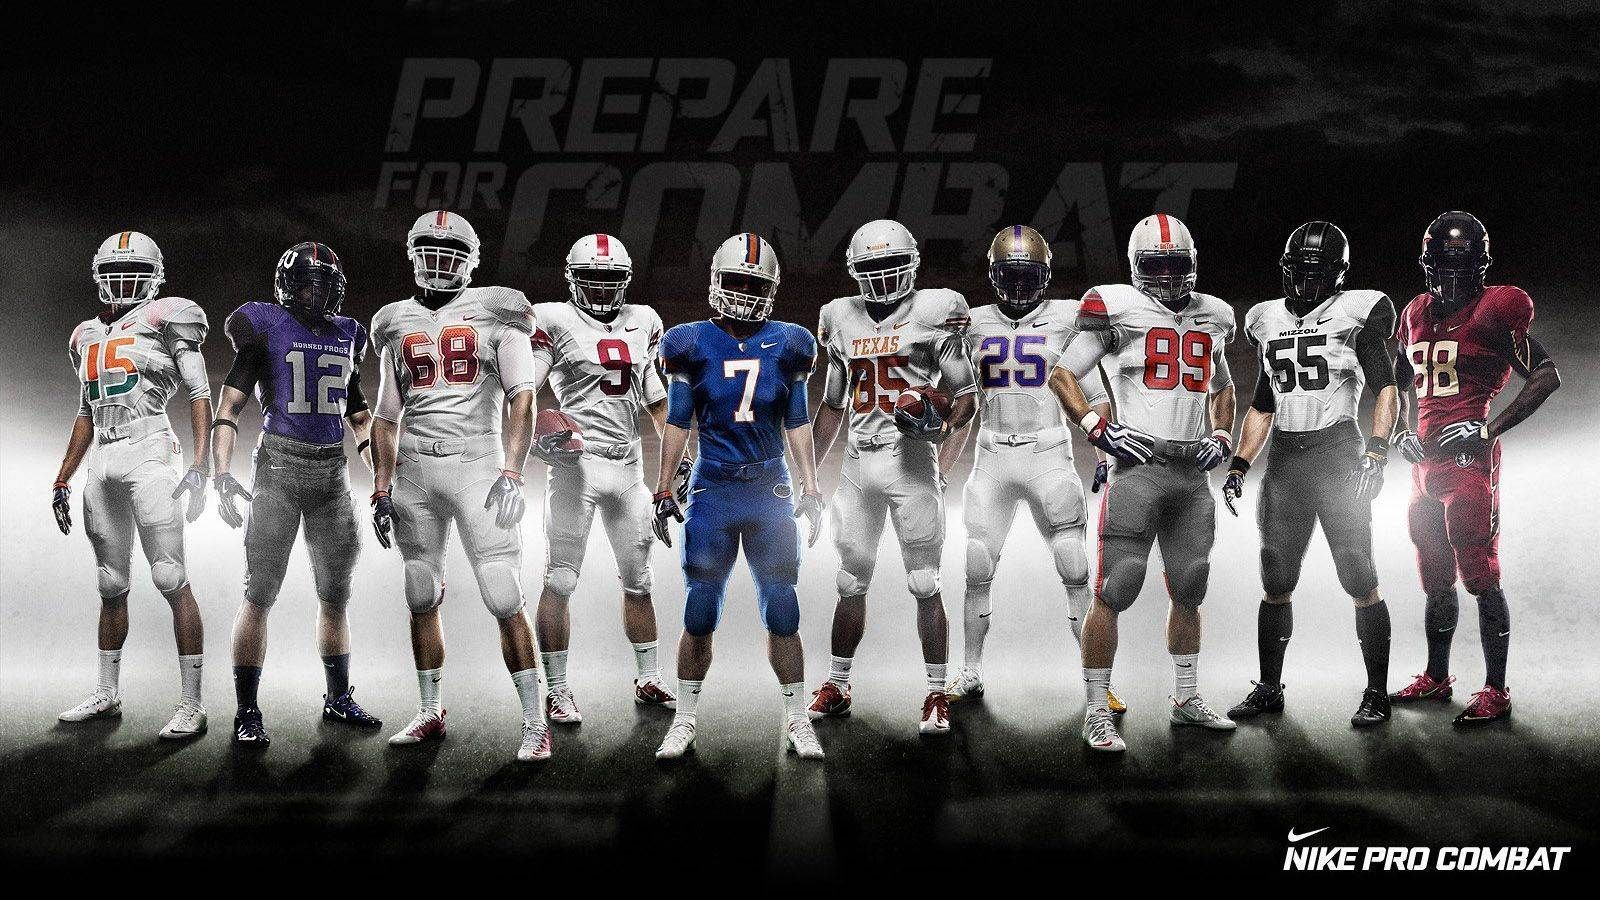 Football Wallpapers Free Download Hd New Latest Sports Player Images 1600 900 Football Wallpaper H Nike Pro Combat Ncaa College Football Nfl Football Wallpaper